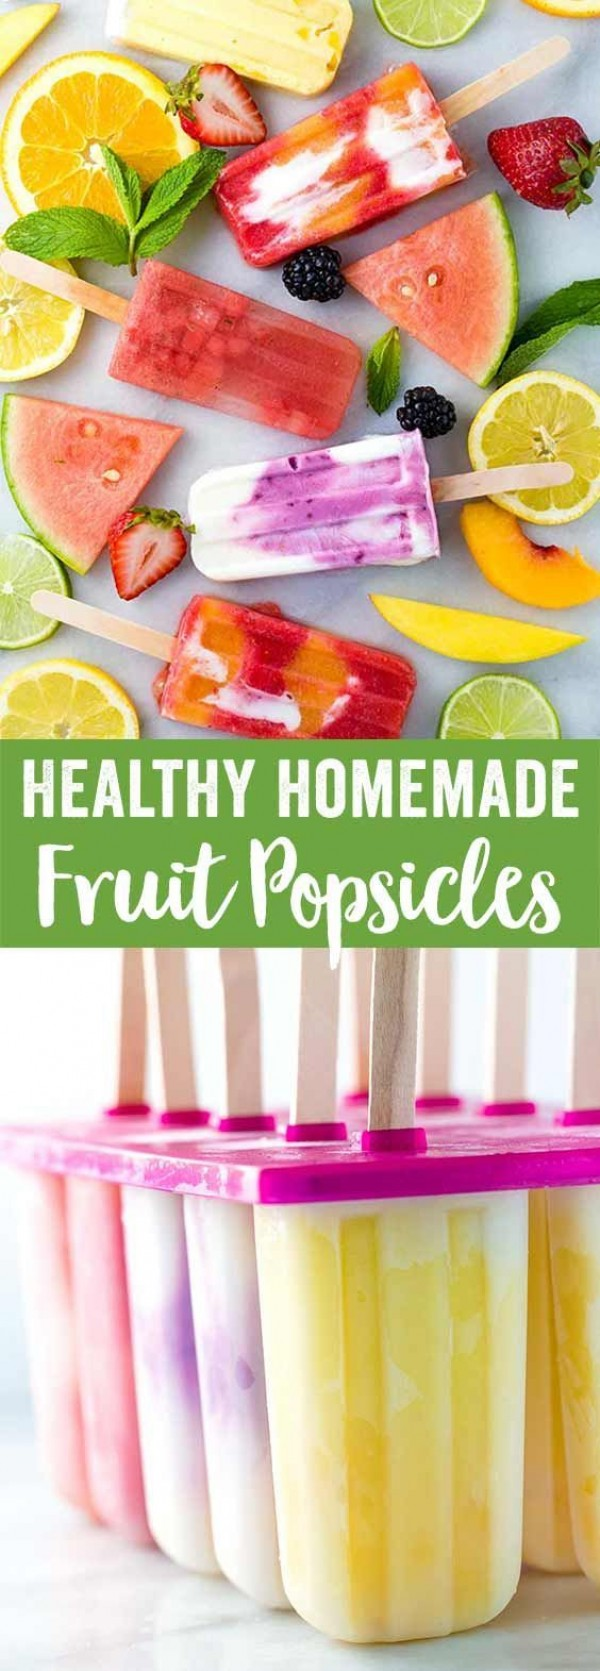 Get the recipe Healthy Homemade Fruit Popsicles @recipes_to_go